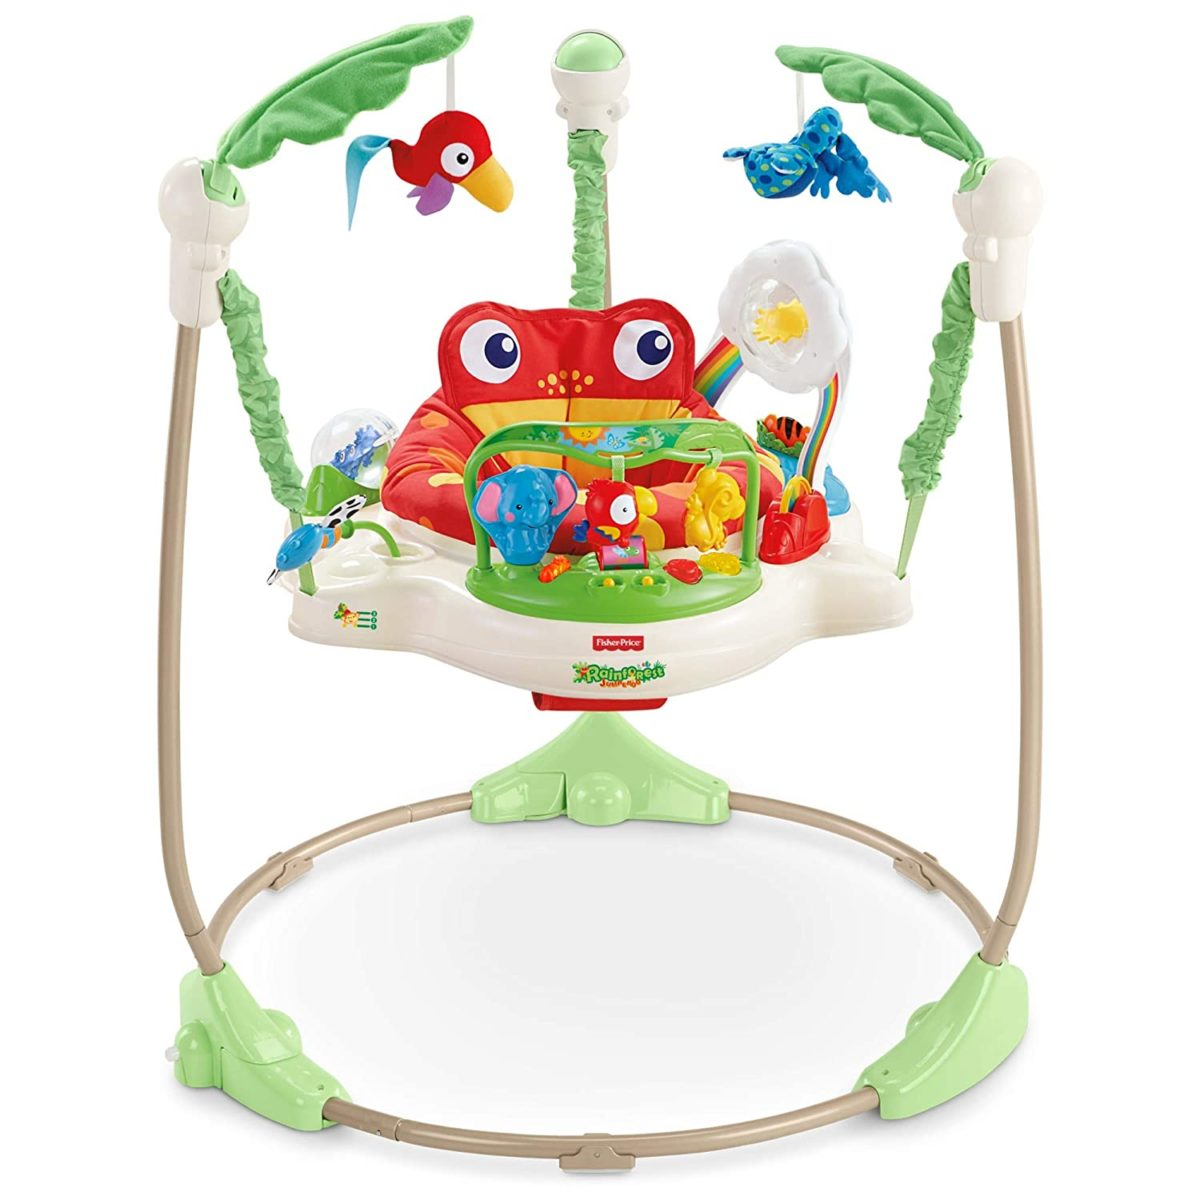 22 top quality fisher-price toys that also educational and entertaining | parenting questions | mamas uncut 7103uup1lsl. sl1500